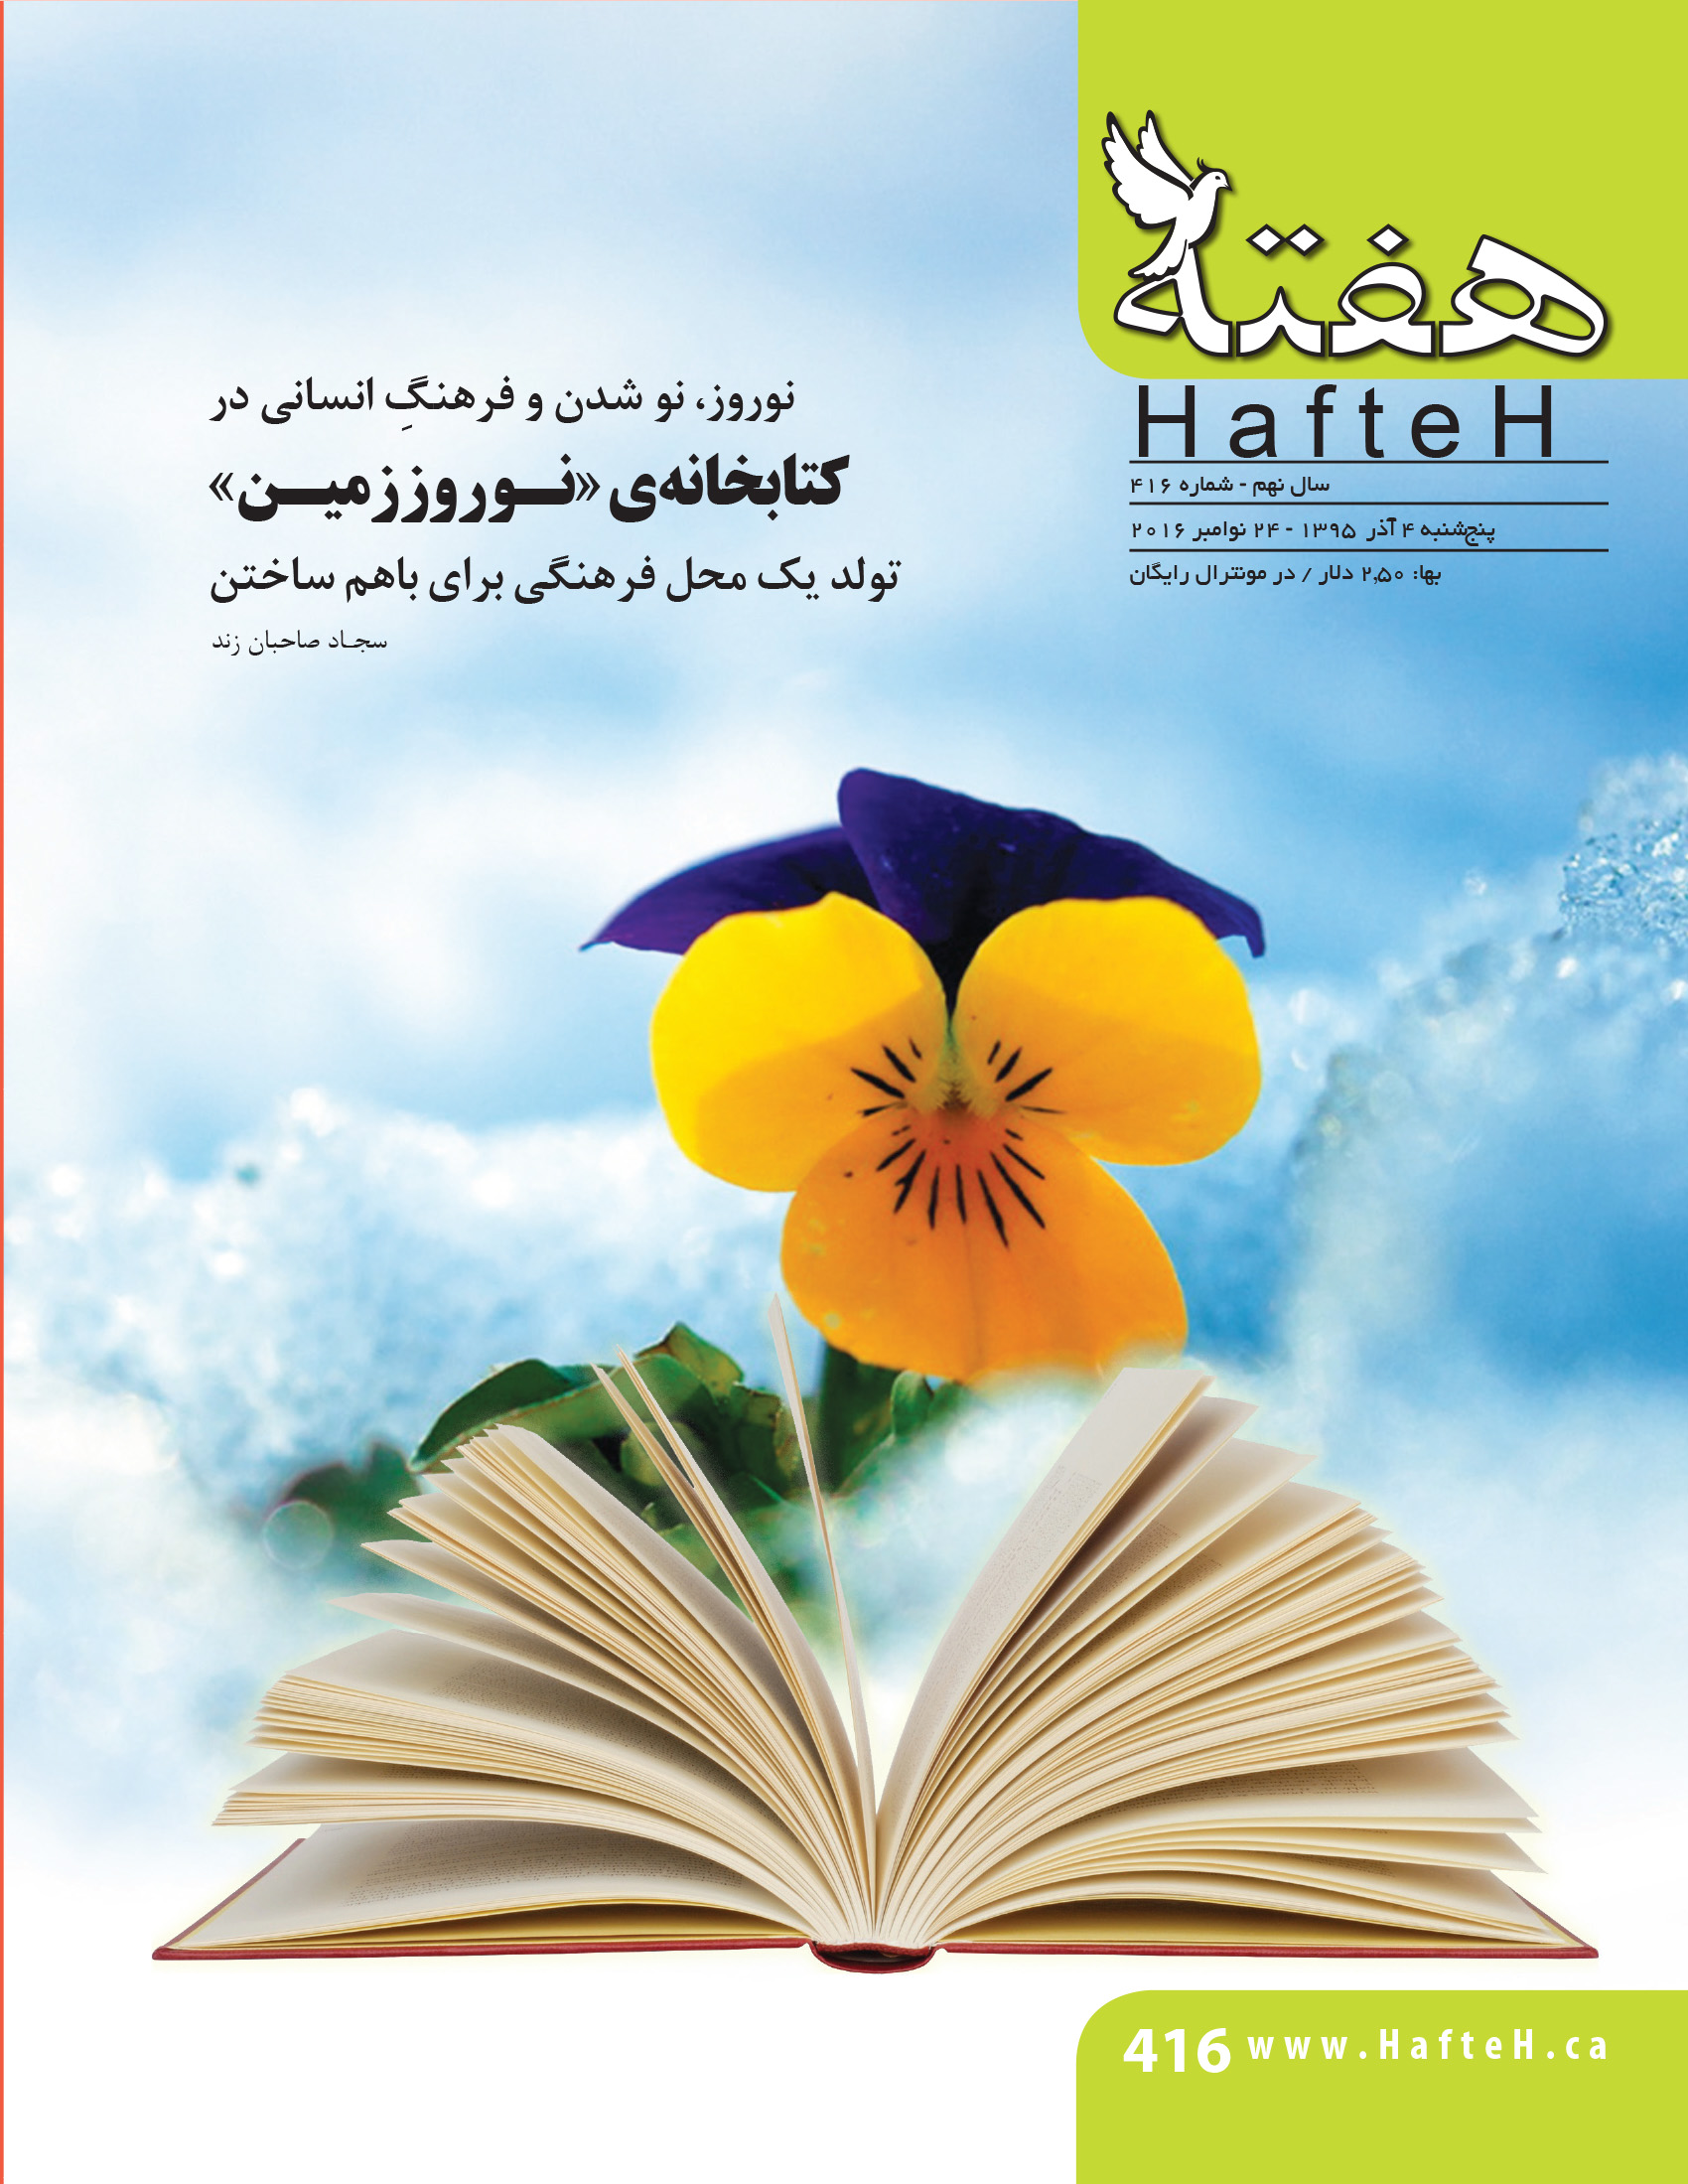 Hafteh - Issue Number: 416